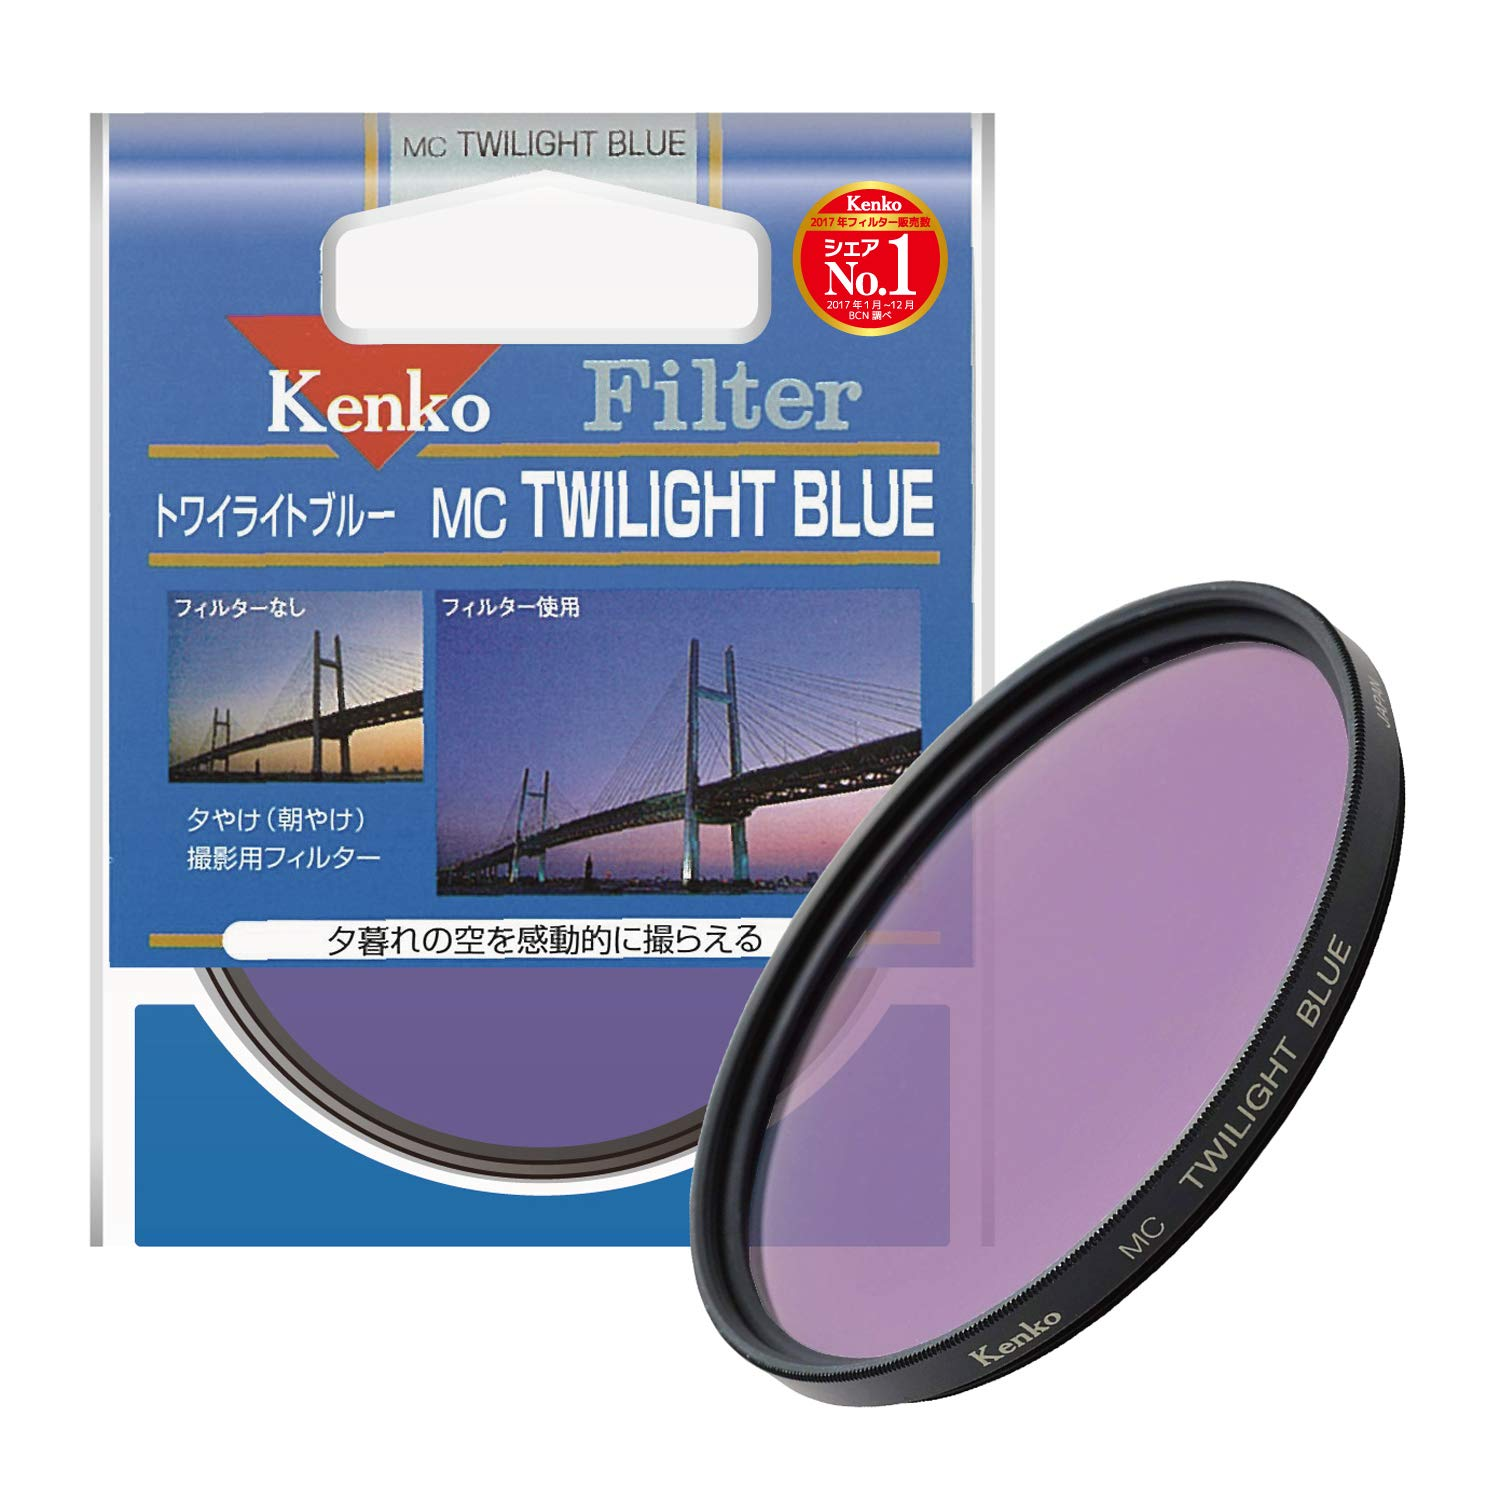 Kenko 77mm Twilight Blue Multi-Coated Camera Lens Filters by Kenko